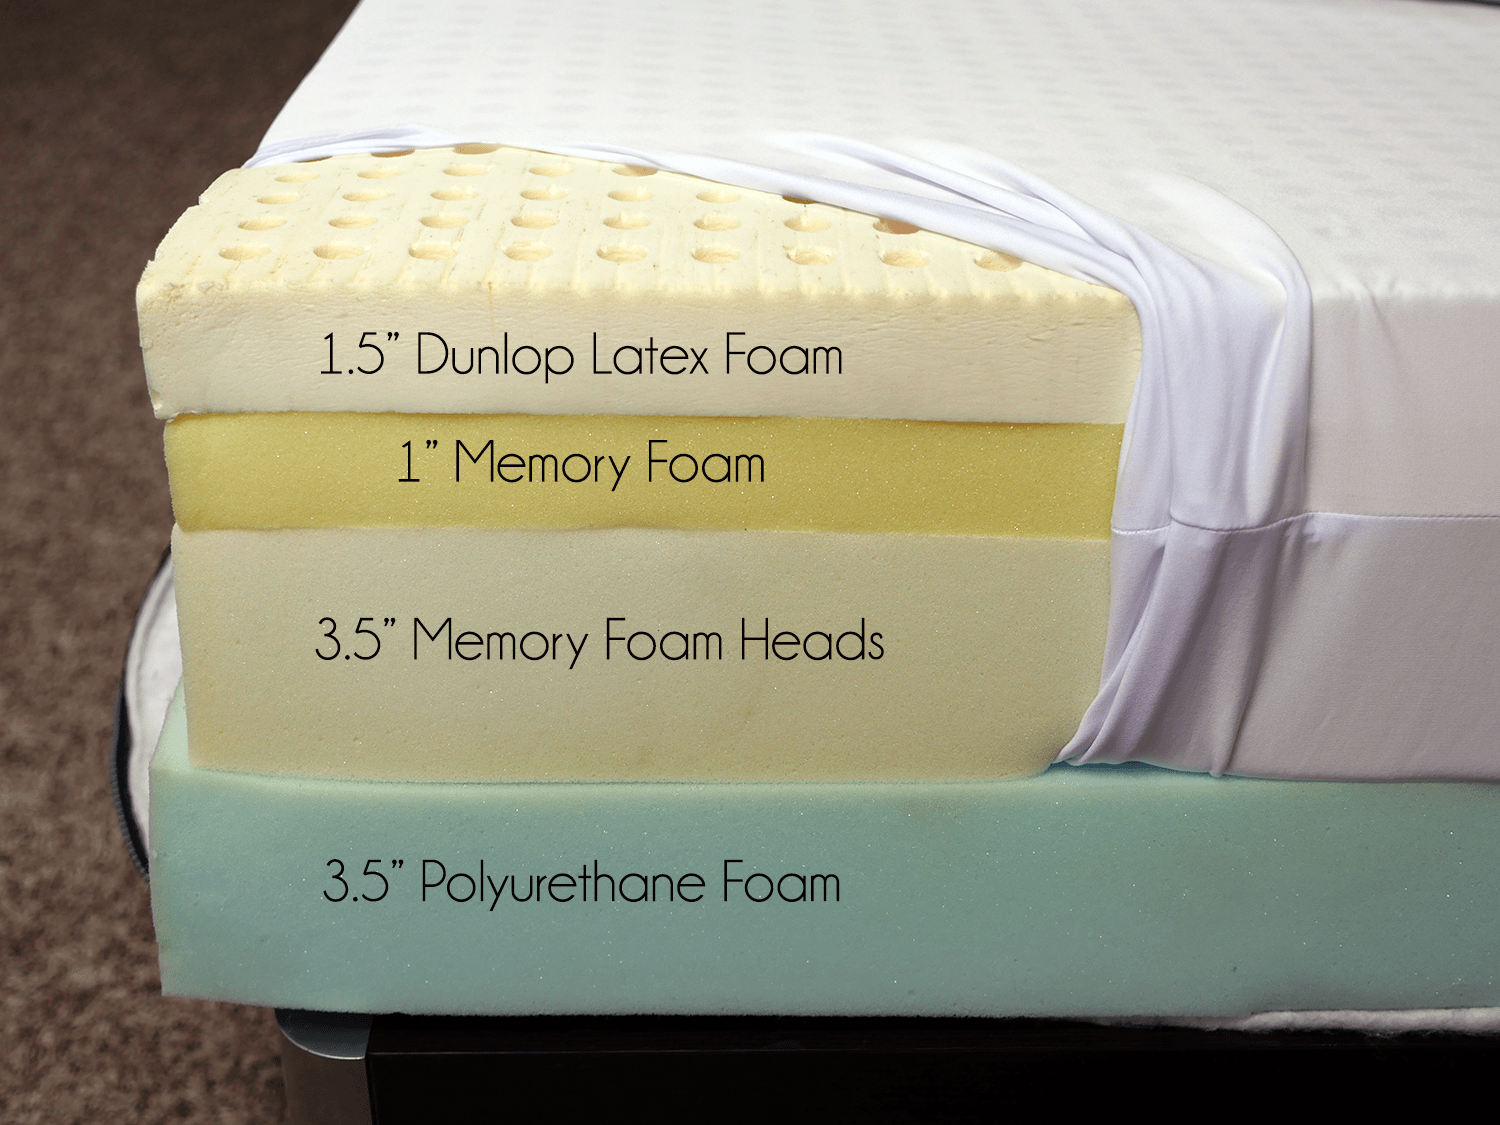 "Medium Luxi mattress layers (top to bottom) - 1.5"" Dunlop latex, 1"" memory foam, 3.5"" memory foam heads, 3.5"" polyurethane foam"